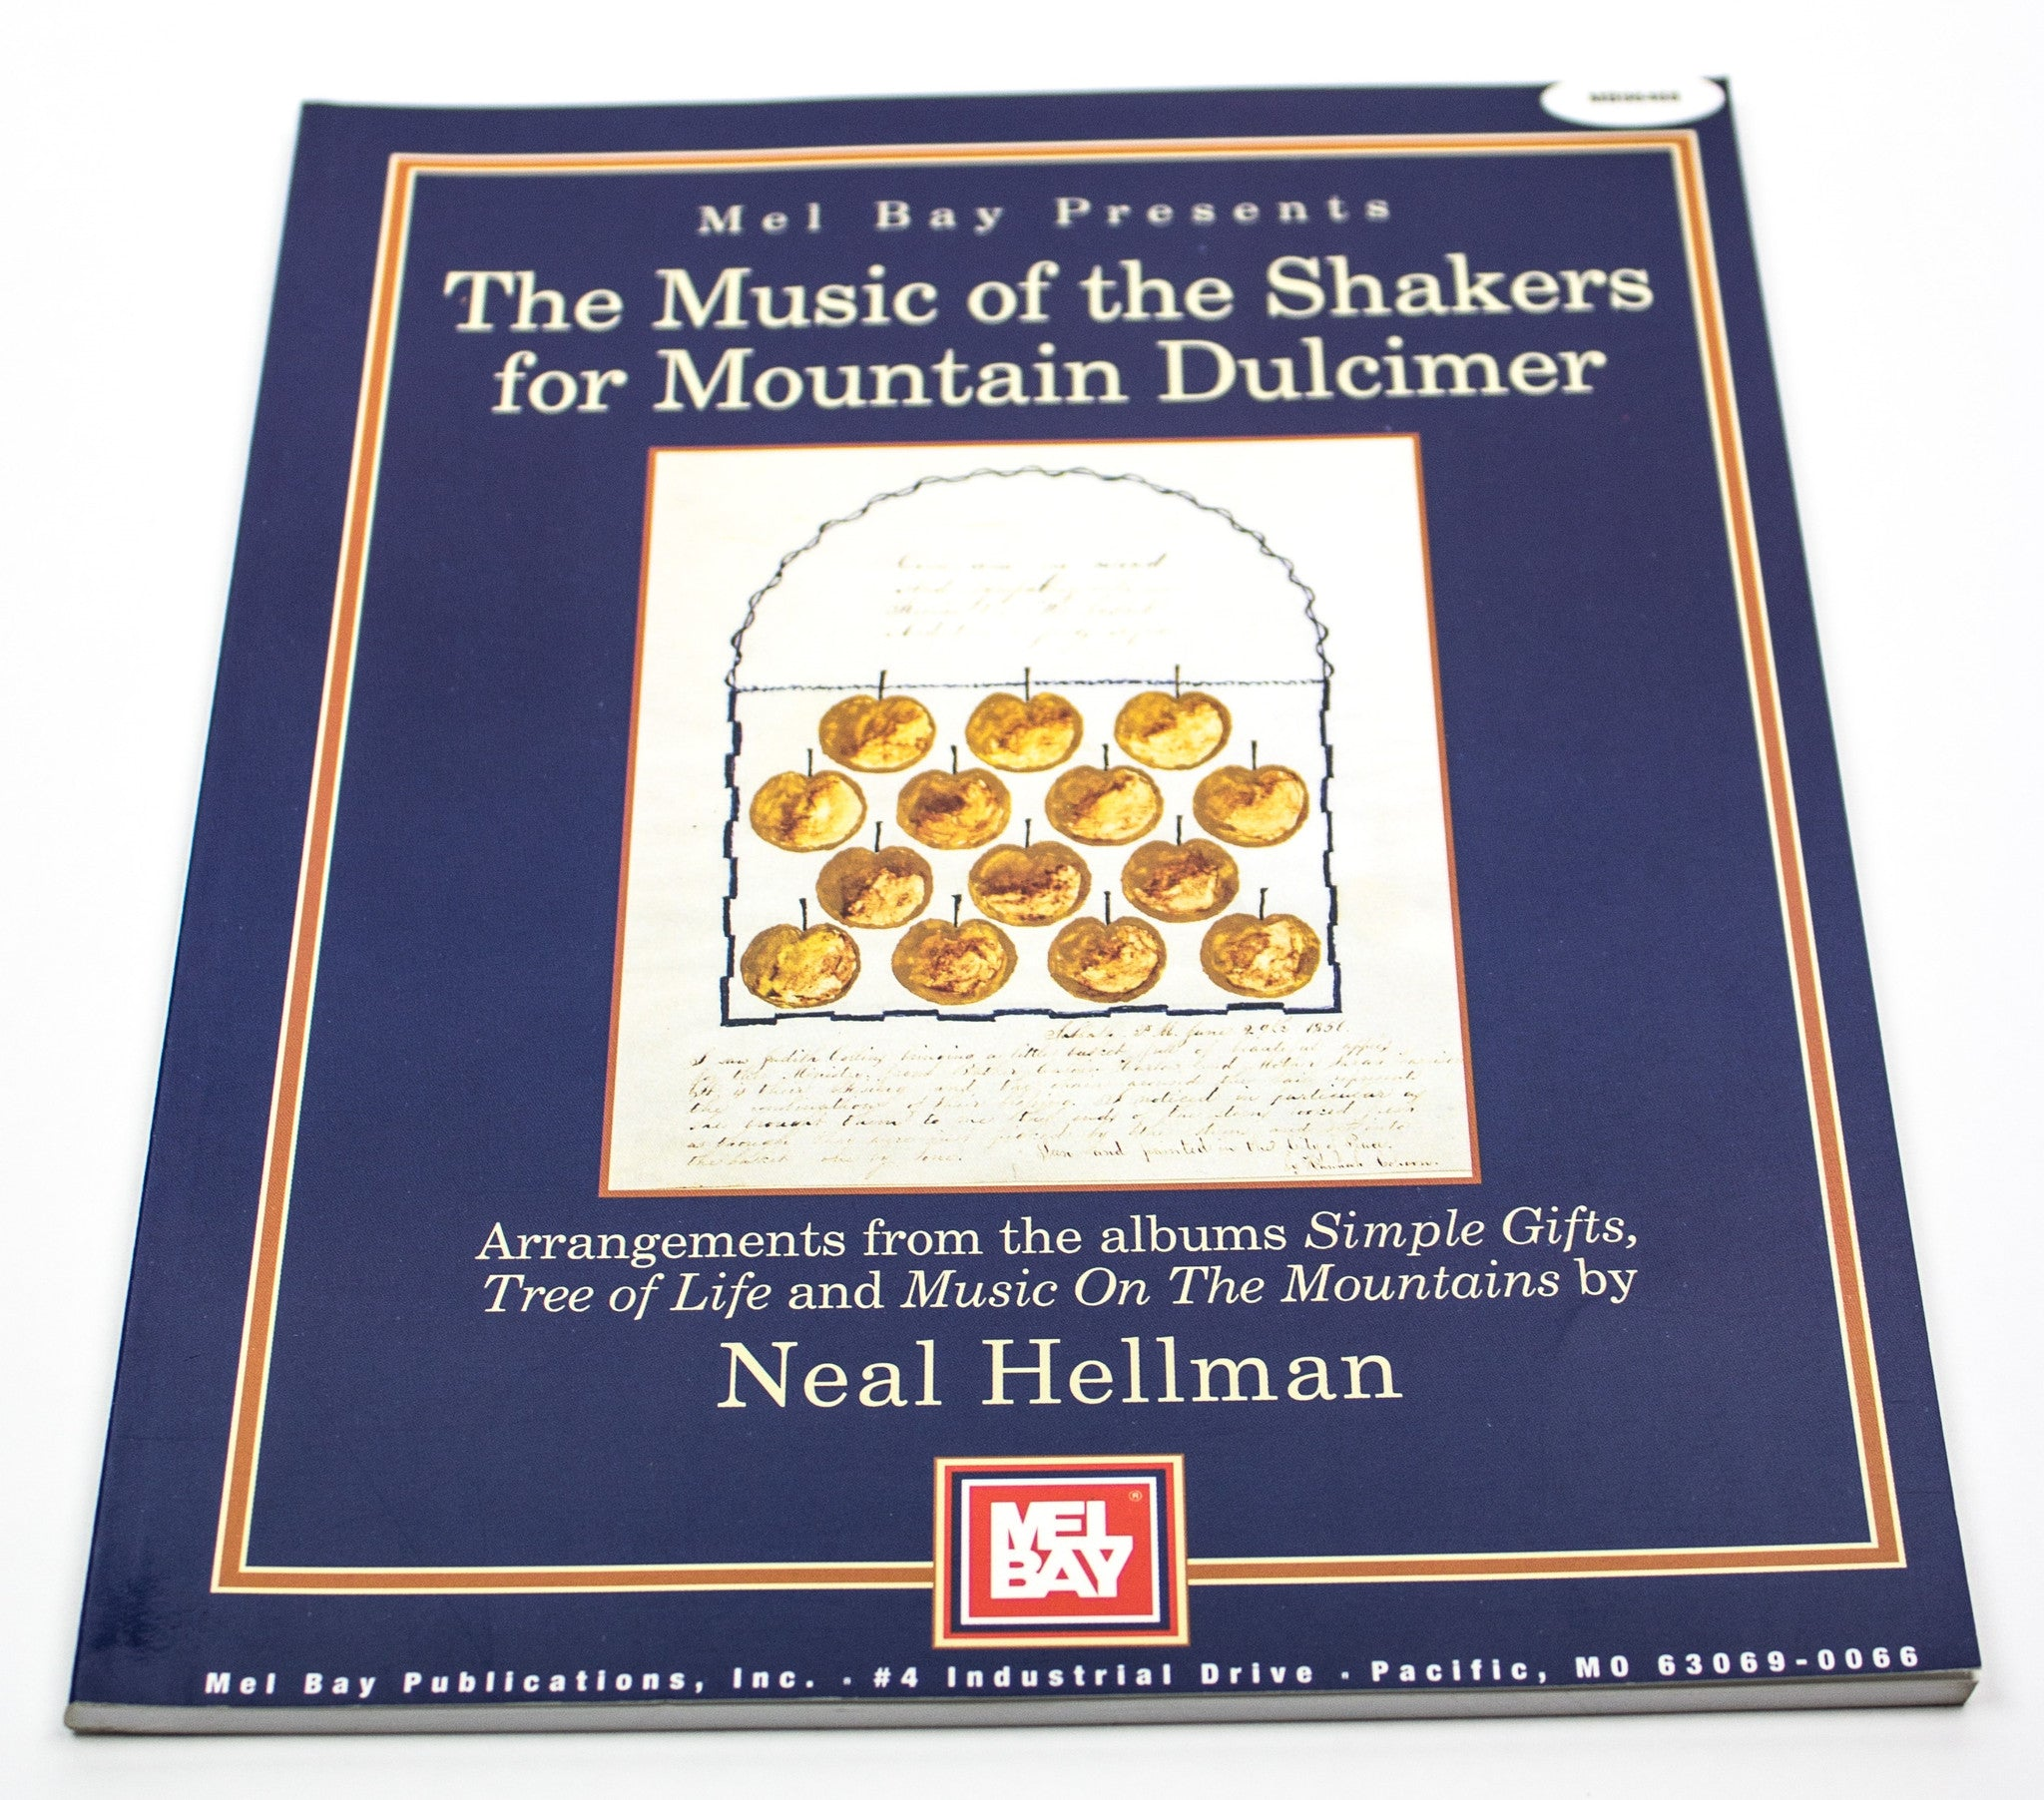 The Music of the Shakers for Mountain Dulcimer